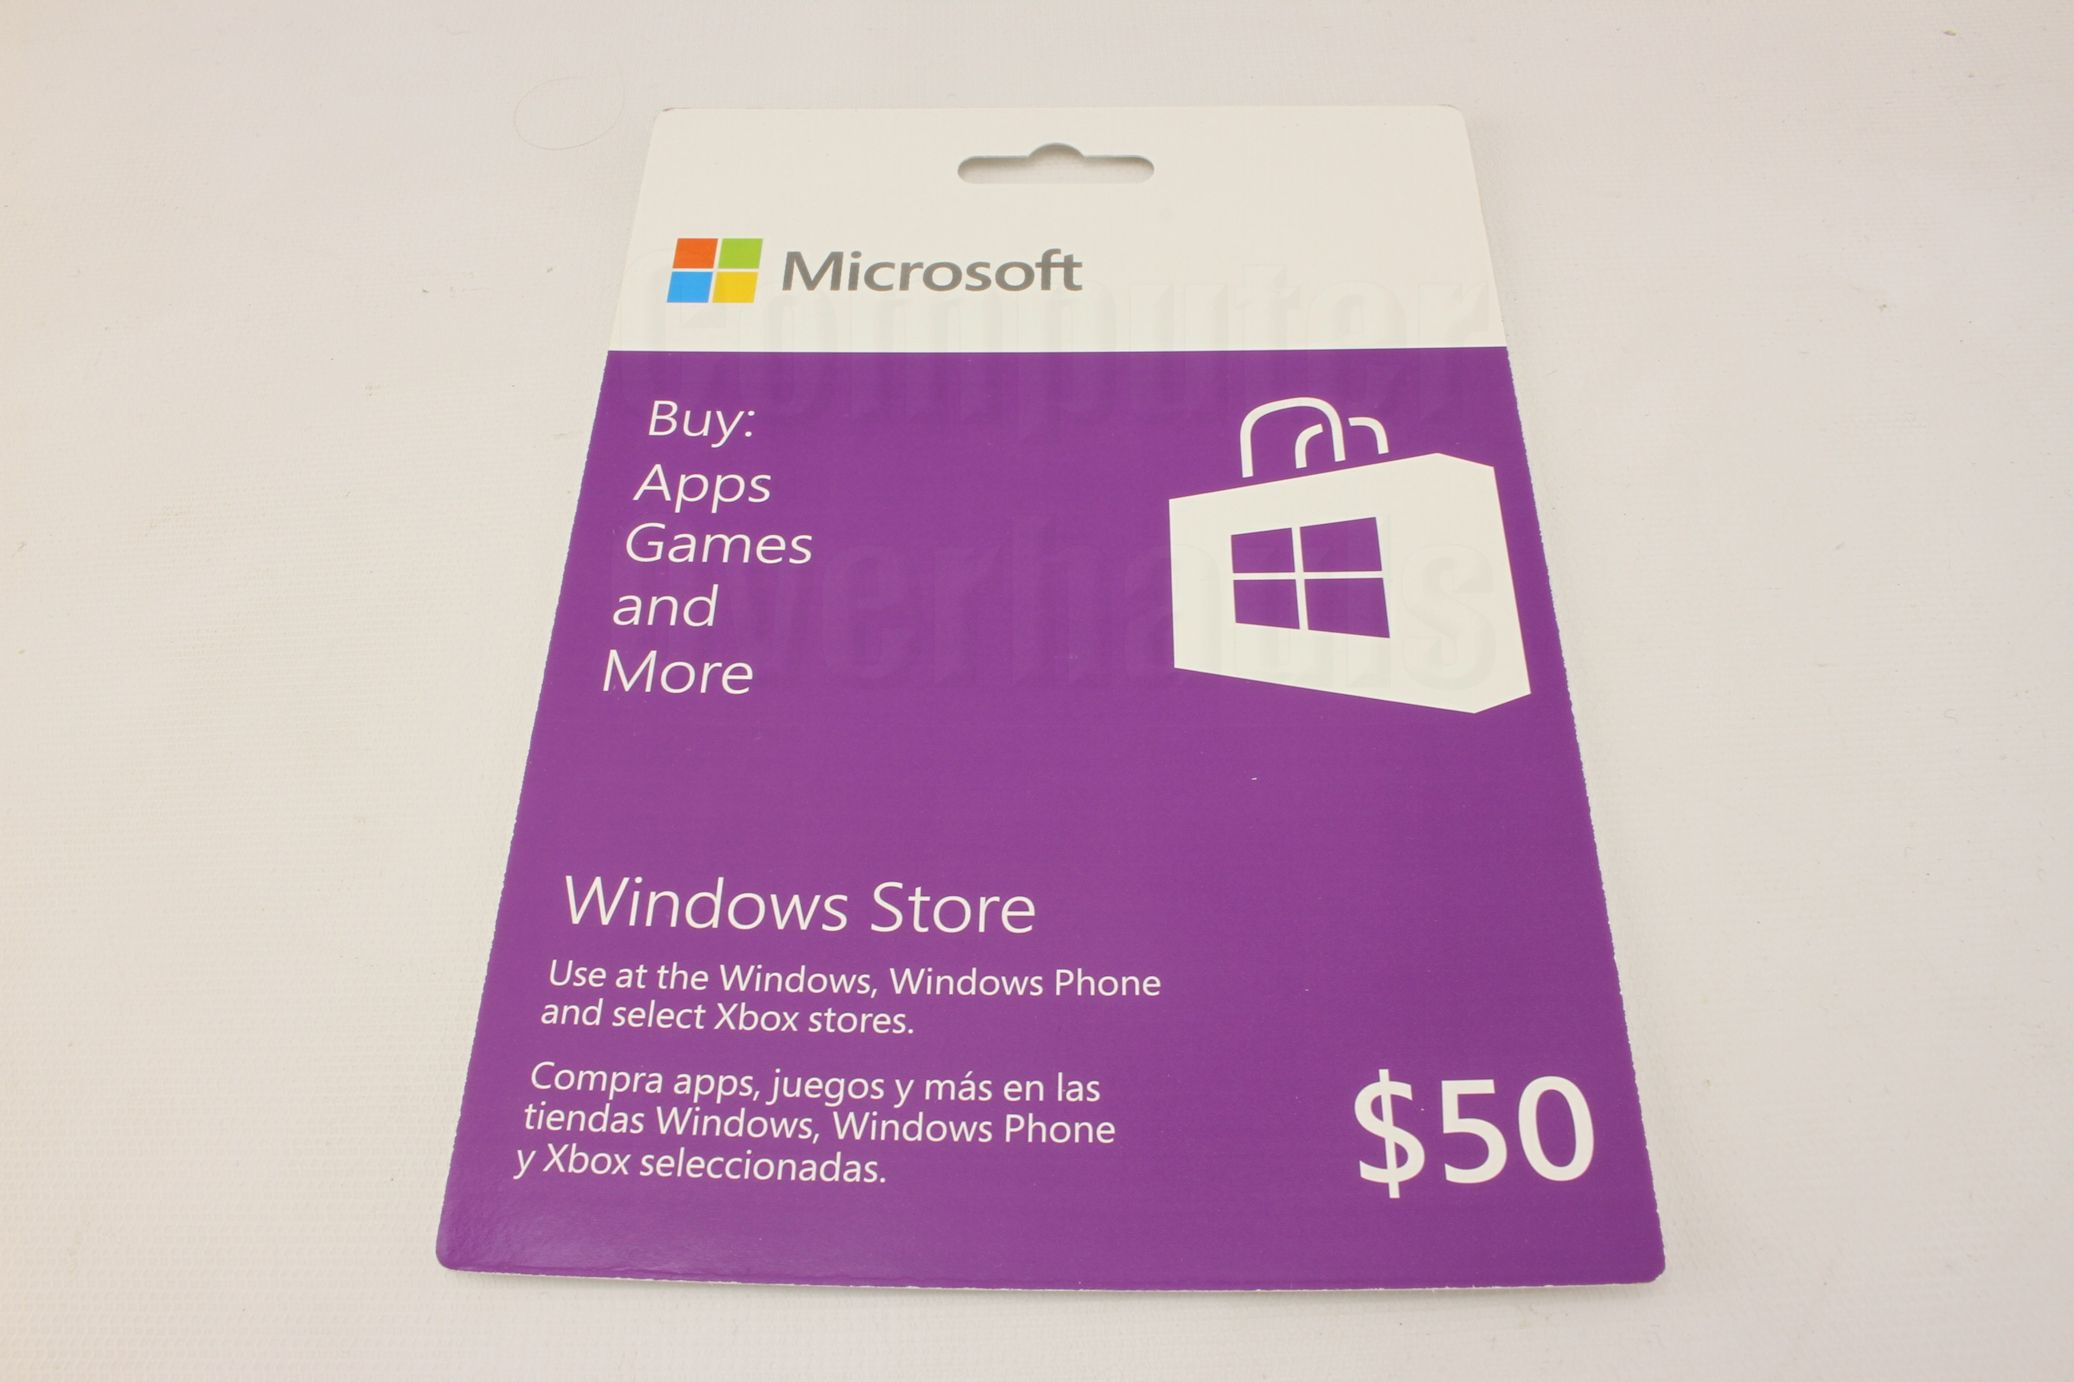 Microsoft Windows Store 50 Gift Card Windows 8 1 PC Windows Phone XBox ...